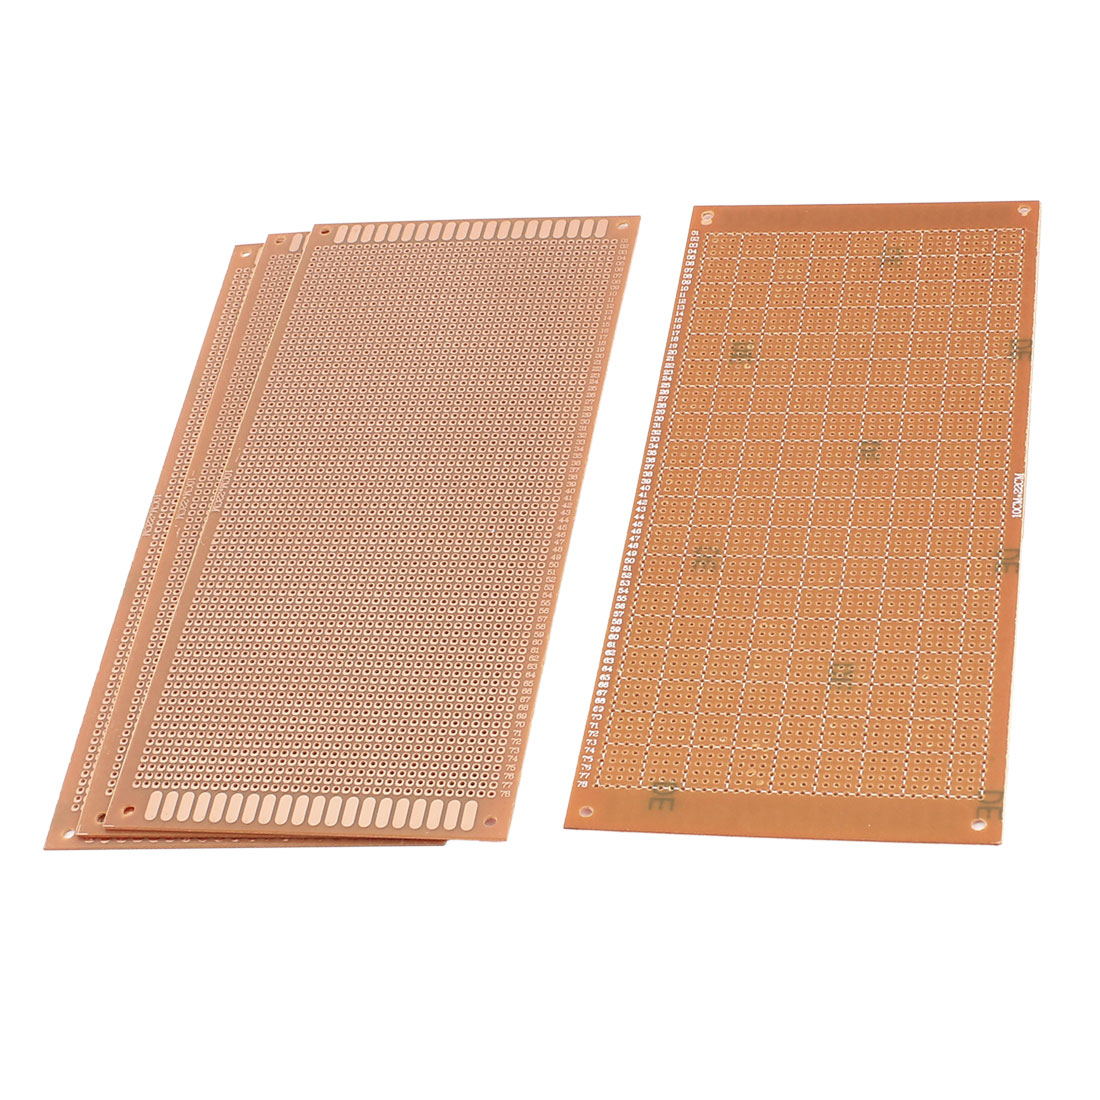 4Pcs 10 x 22cm Electronic DIY Prototype Paper Single Side PCB Board Brown